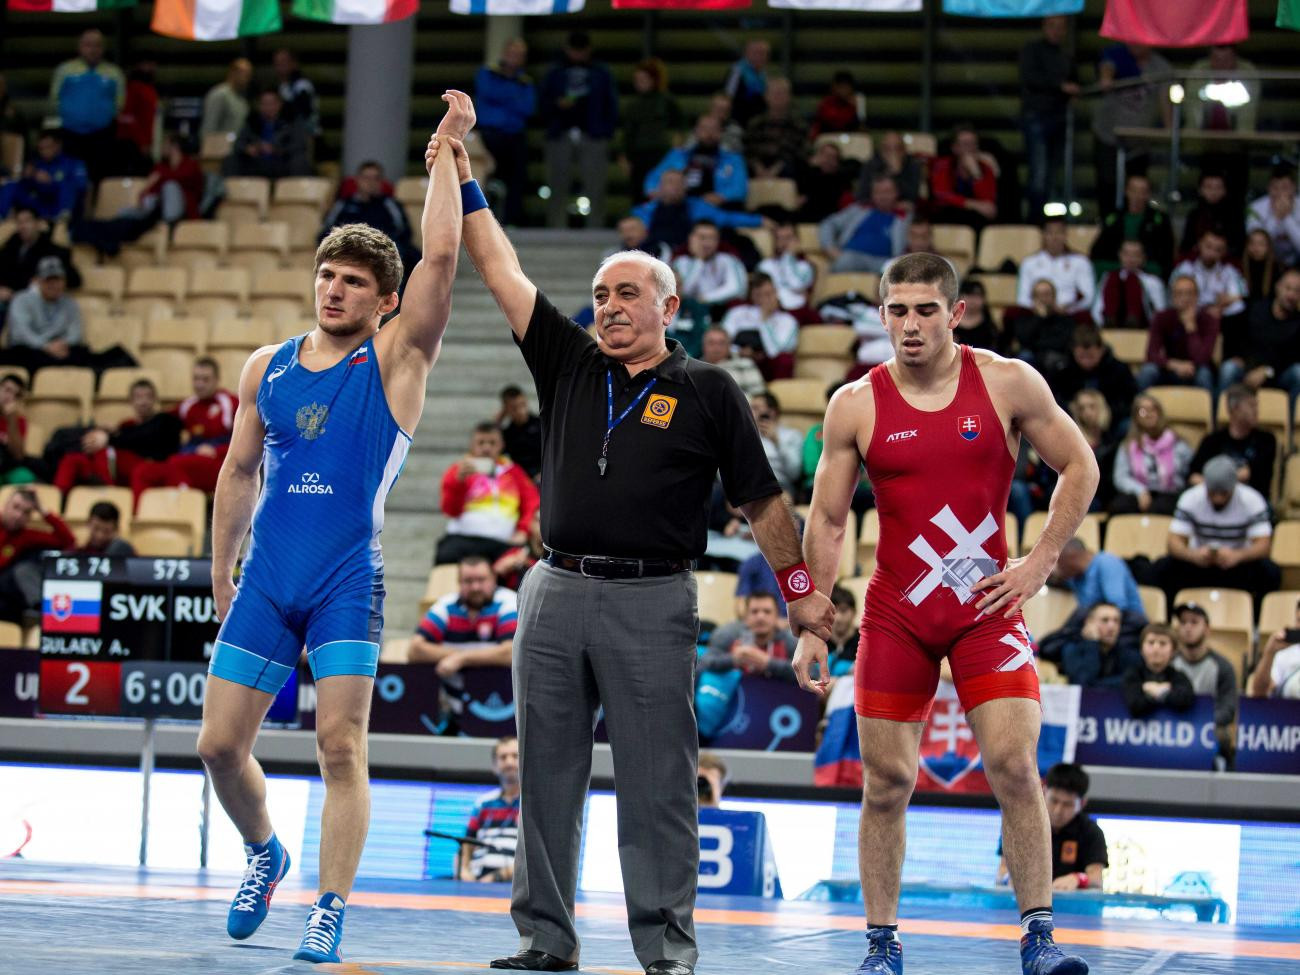 Russia claim two titles on final day of Under-23 World Wrestling Championships